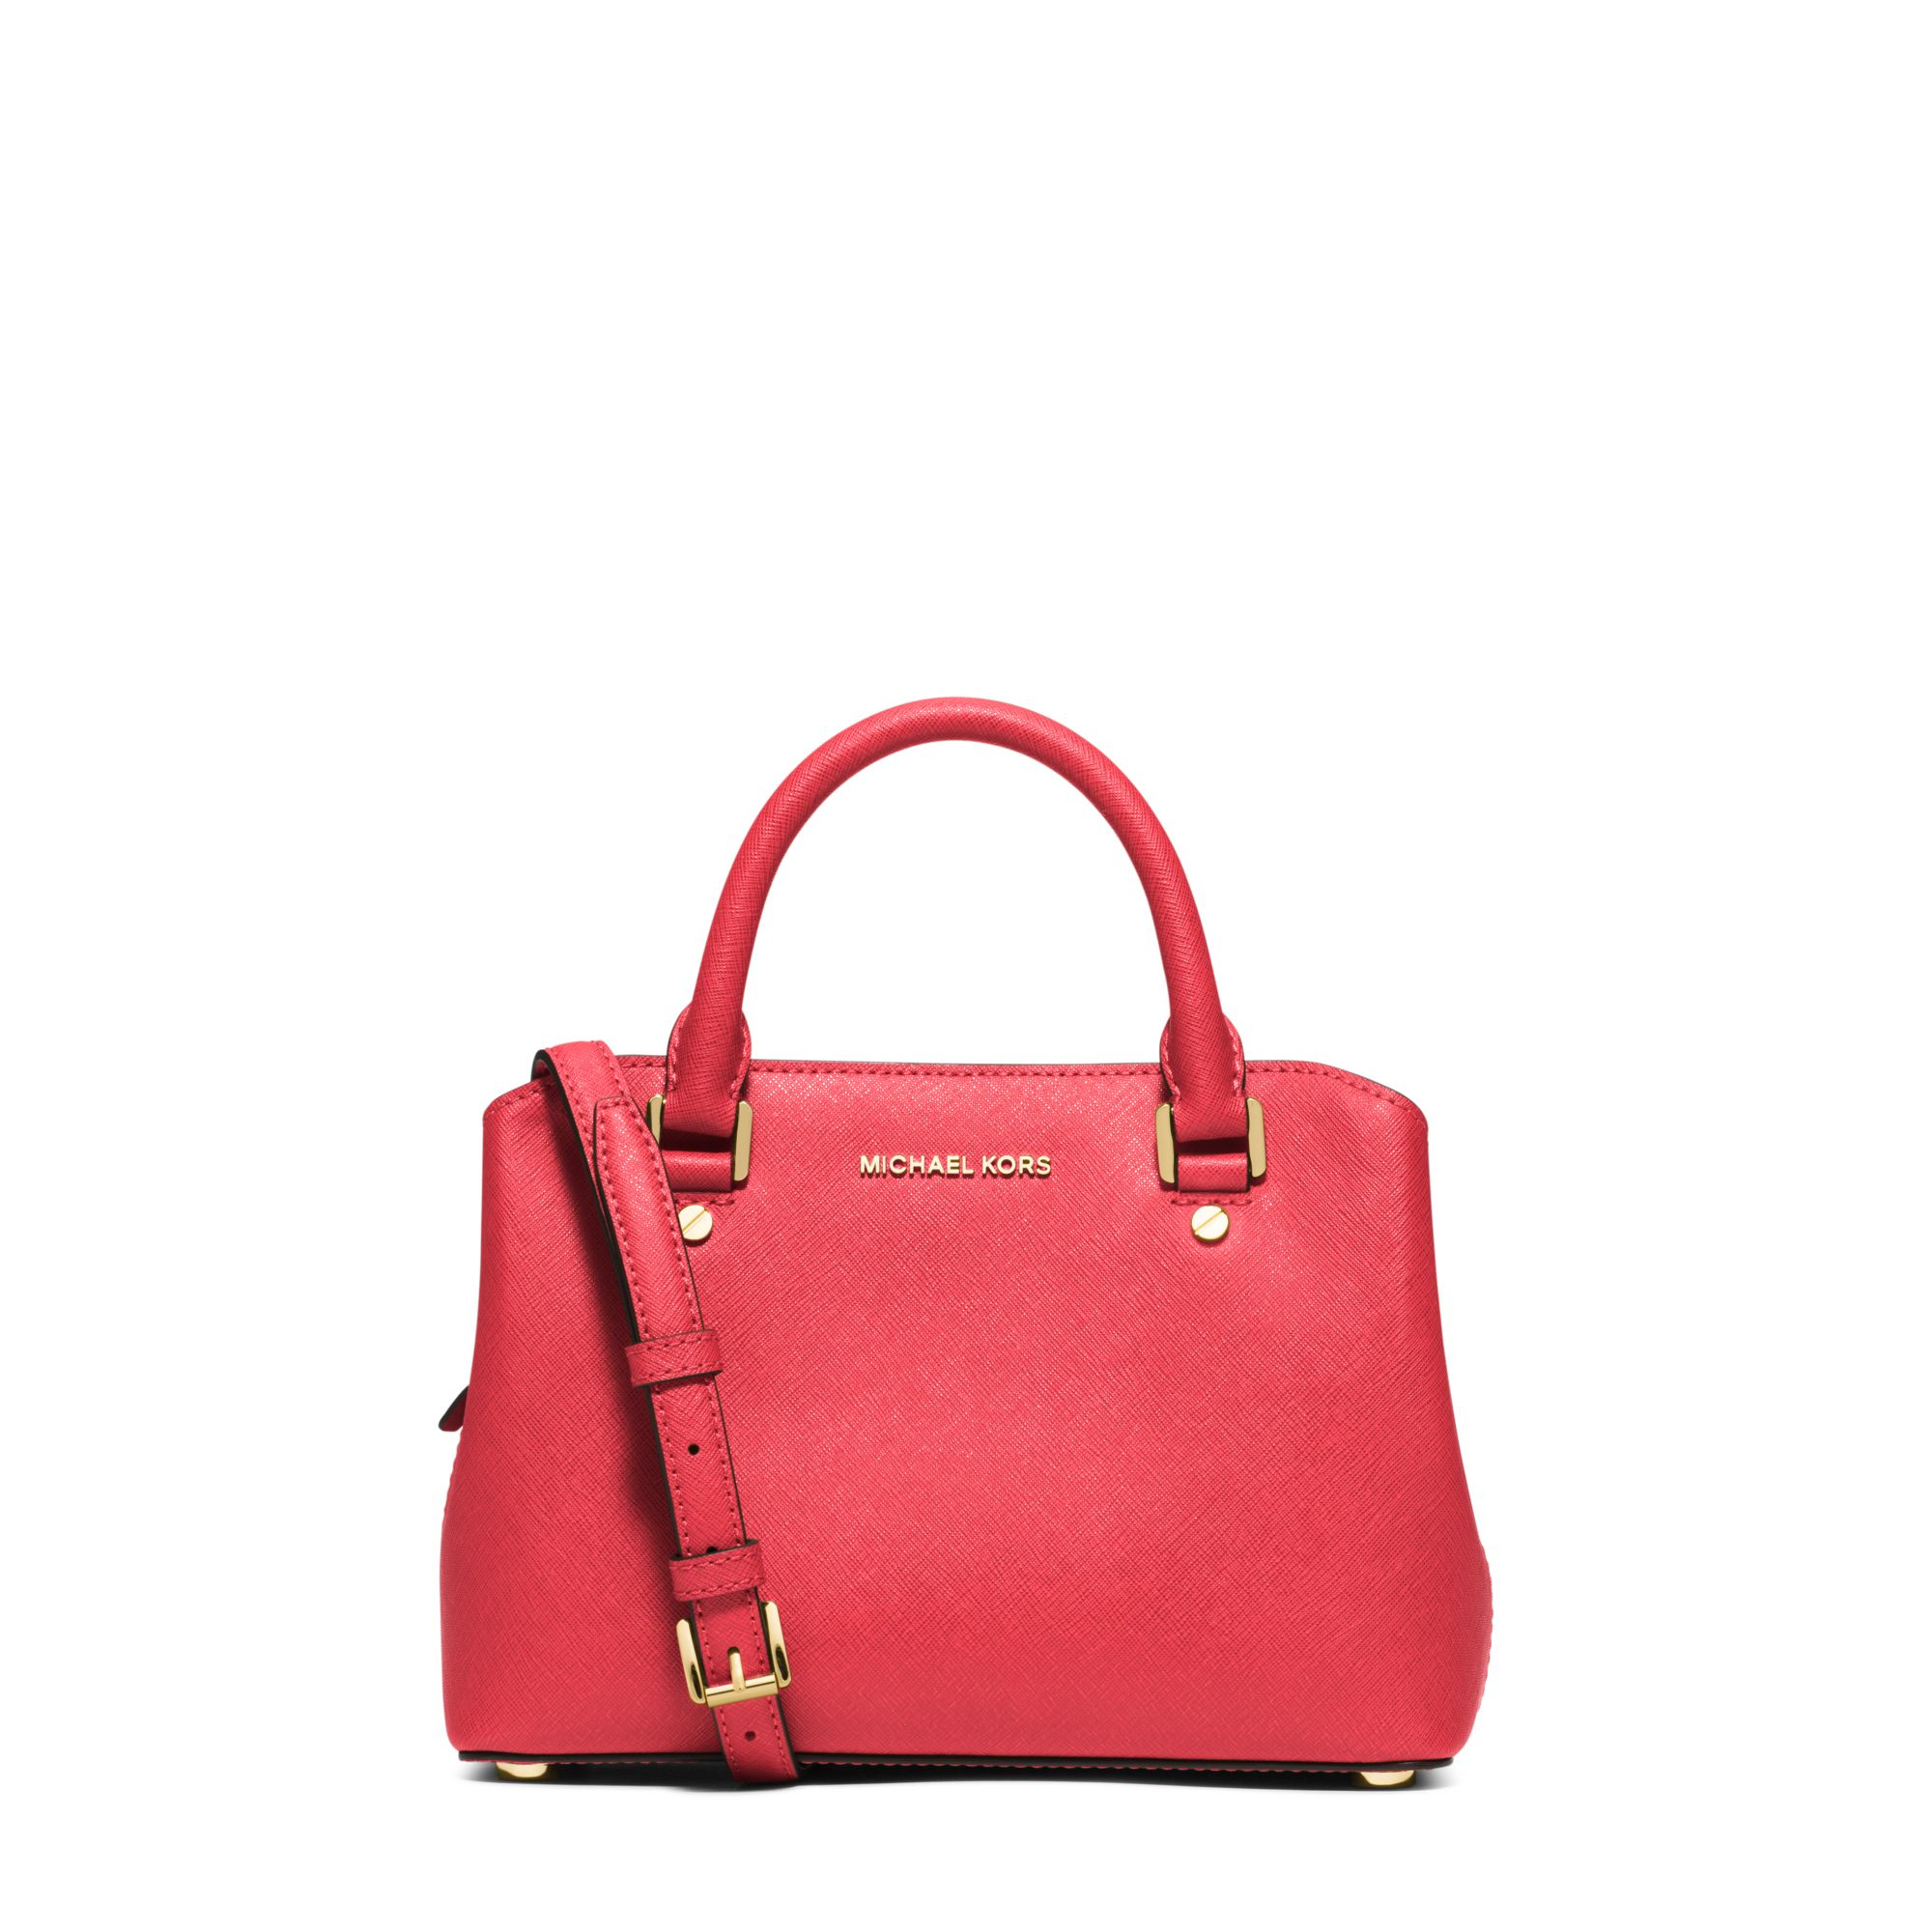 michael kors savannah small saffiano leather satchel in pink lyst. Black Bedroom Furniture Sets. Home Design Ideas